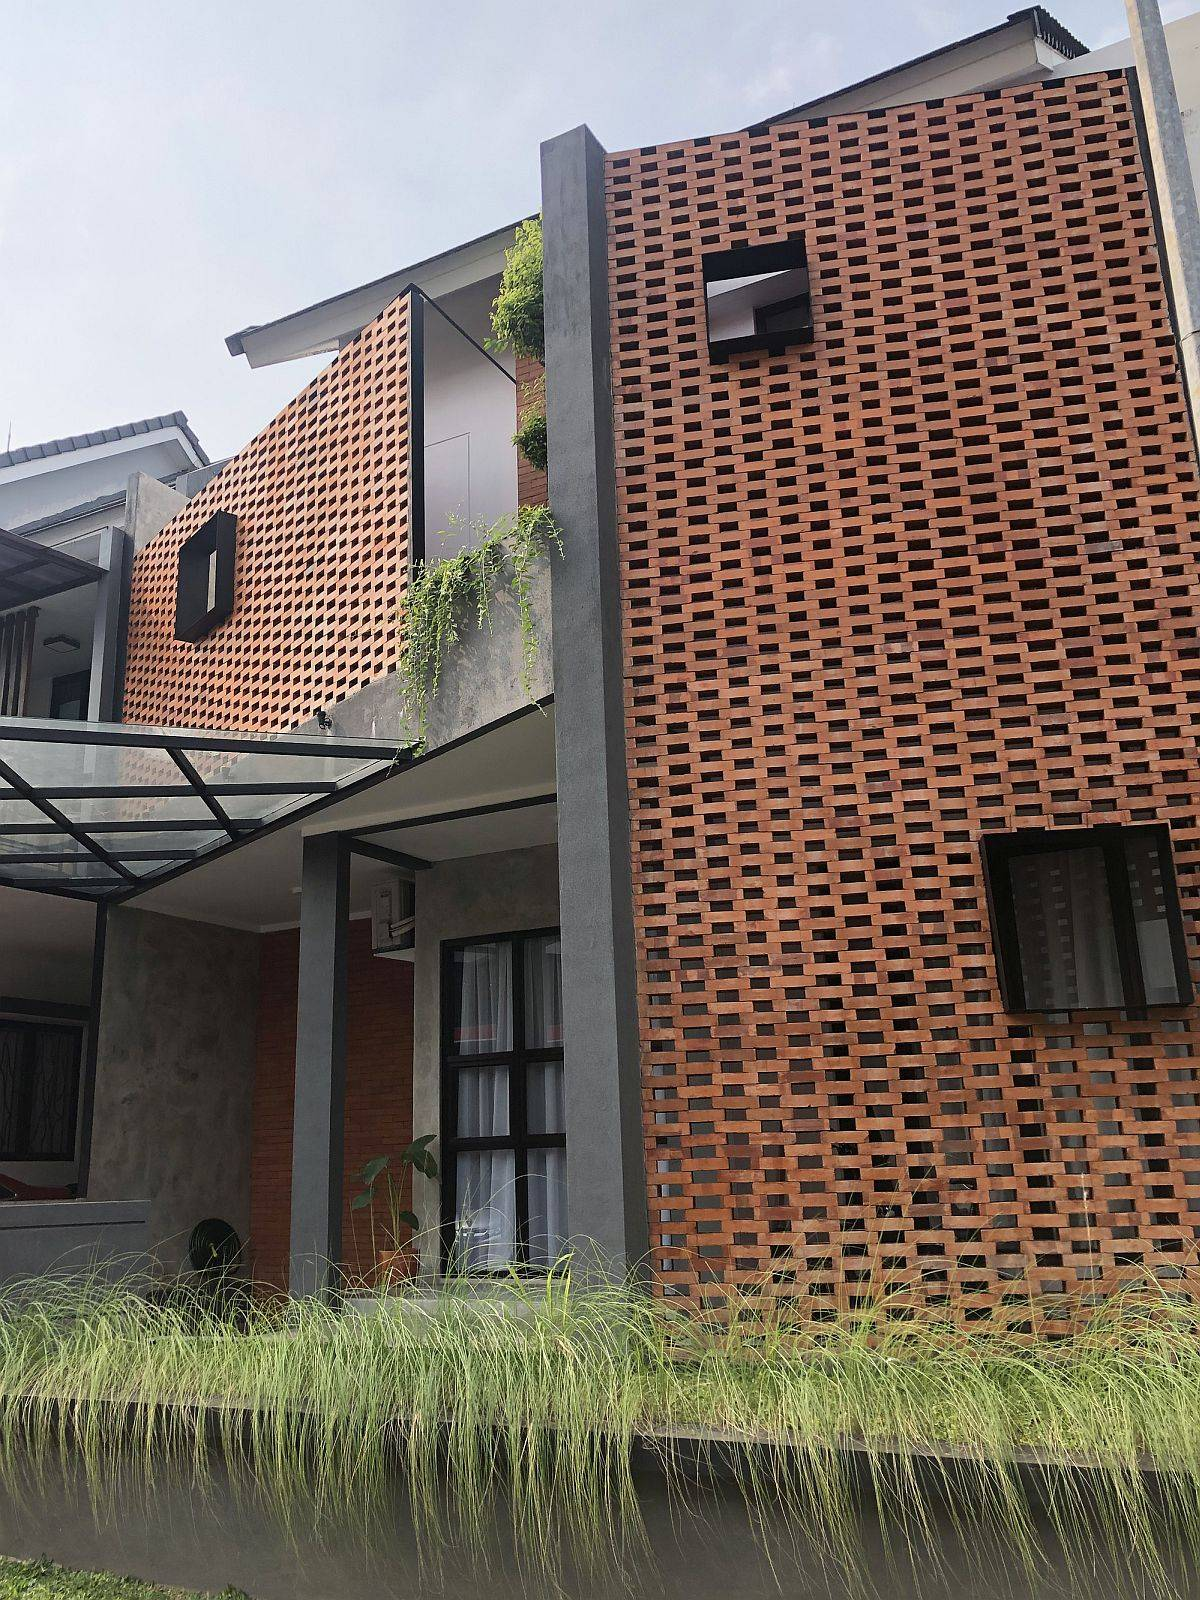 Lovely-interlocking-brick-facade-makes-an-instant-visual-impact-after-renovation-47126